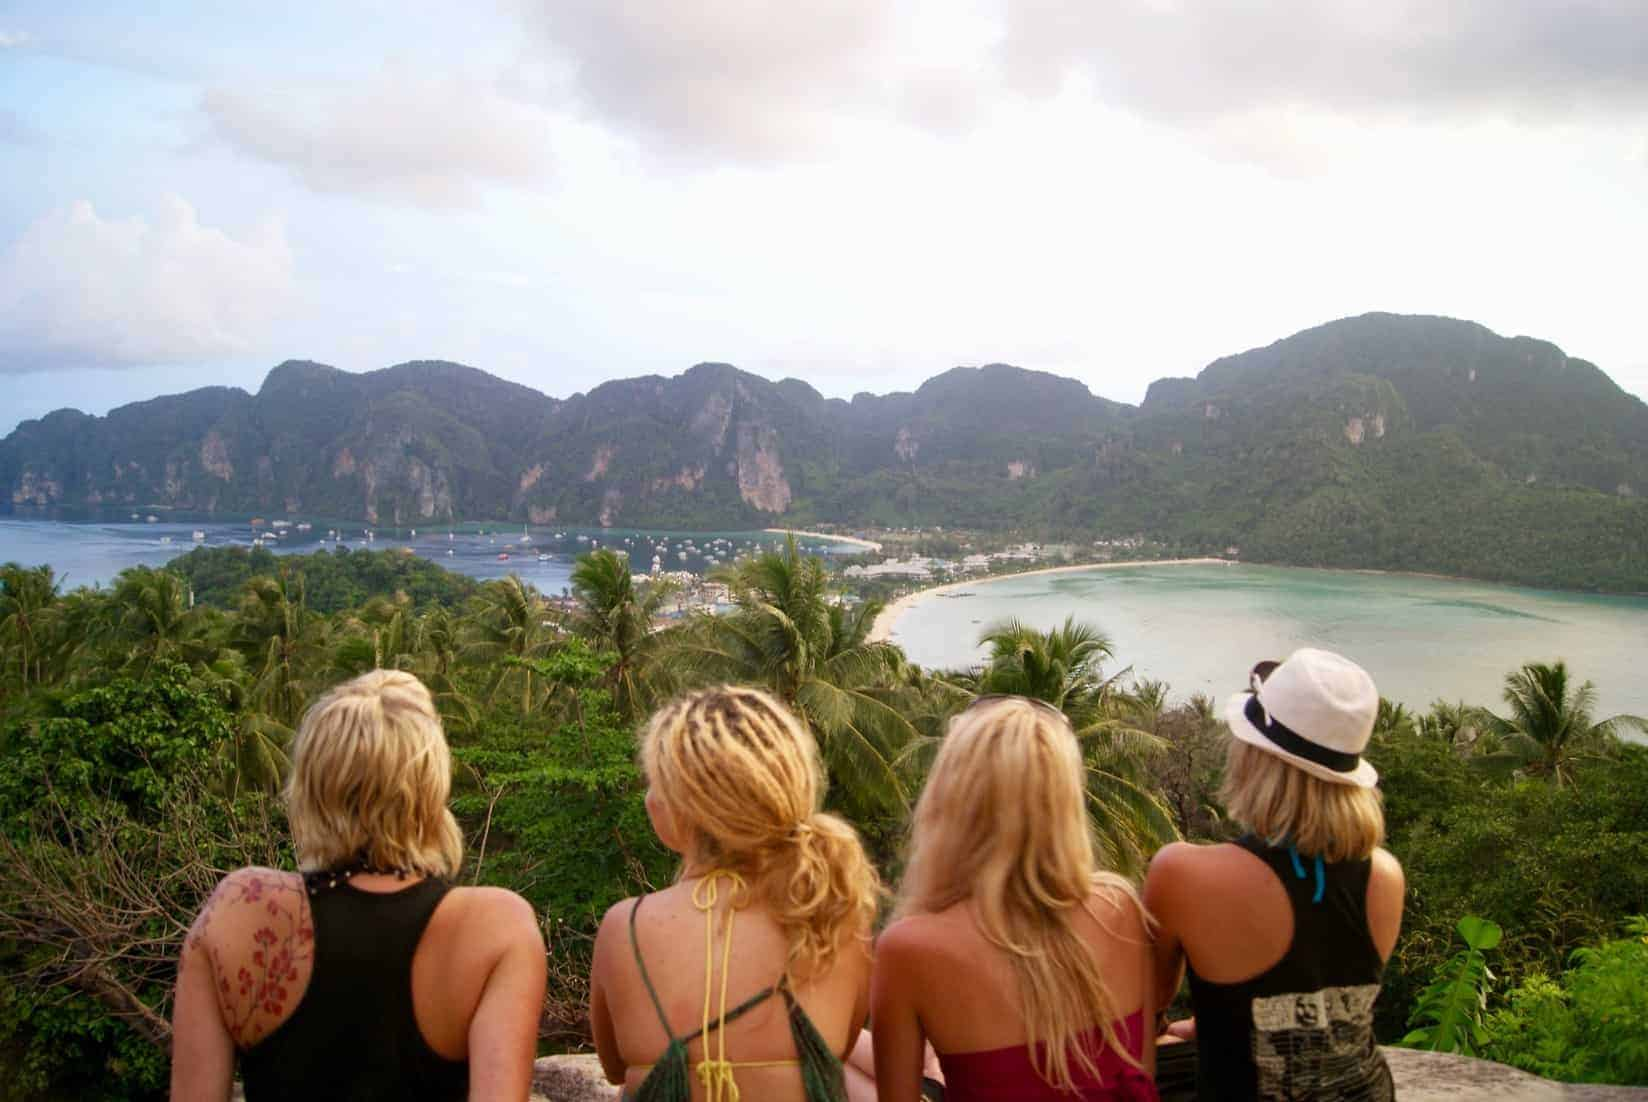 Group of backpackers watch the sunset in Thailand.